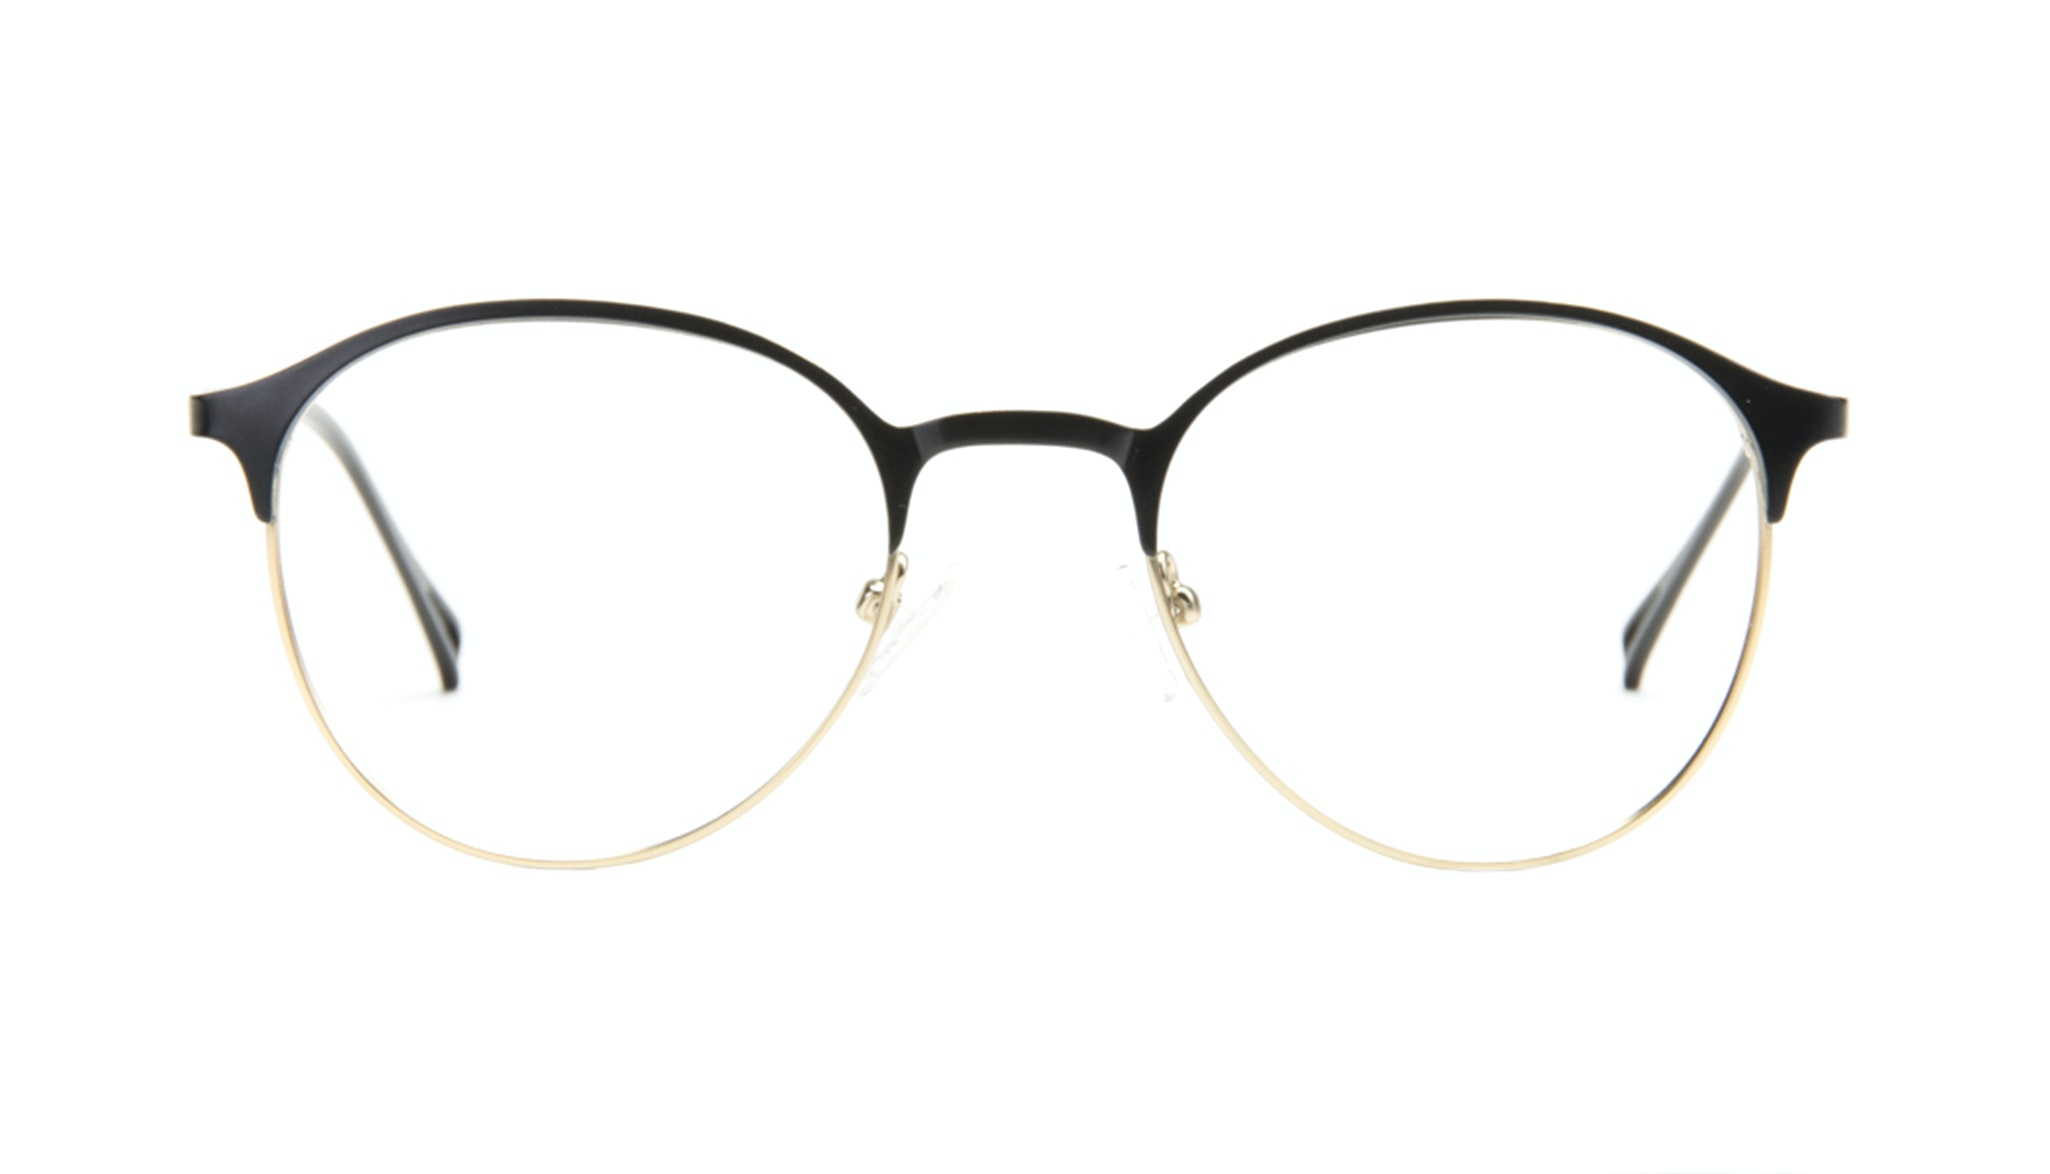 Affordable Fashion Glasses Round Eyeglasses Women Bay Deep Gold